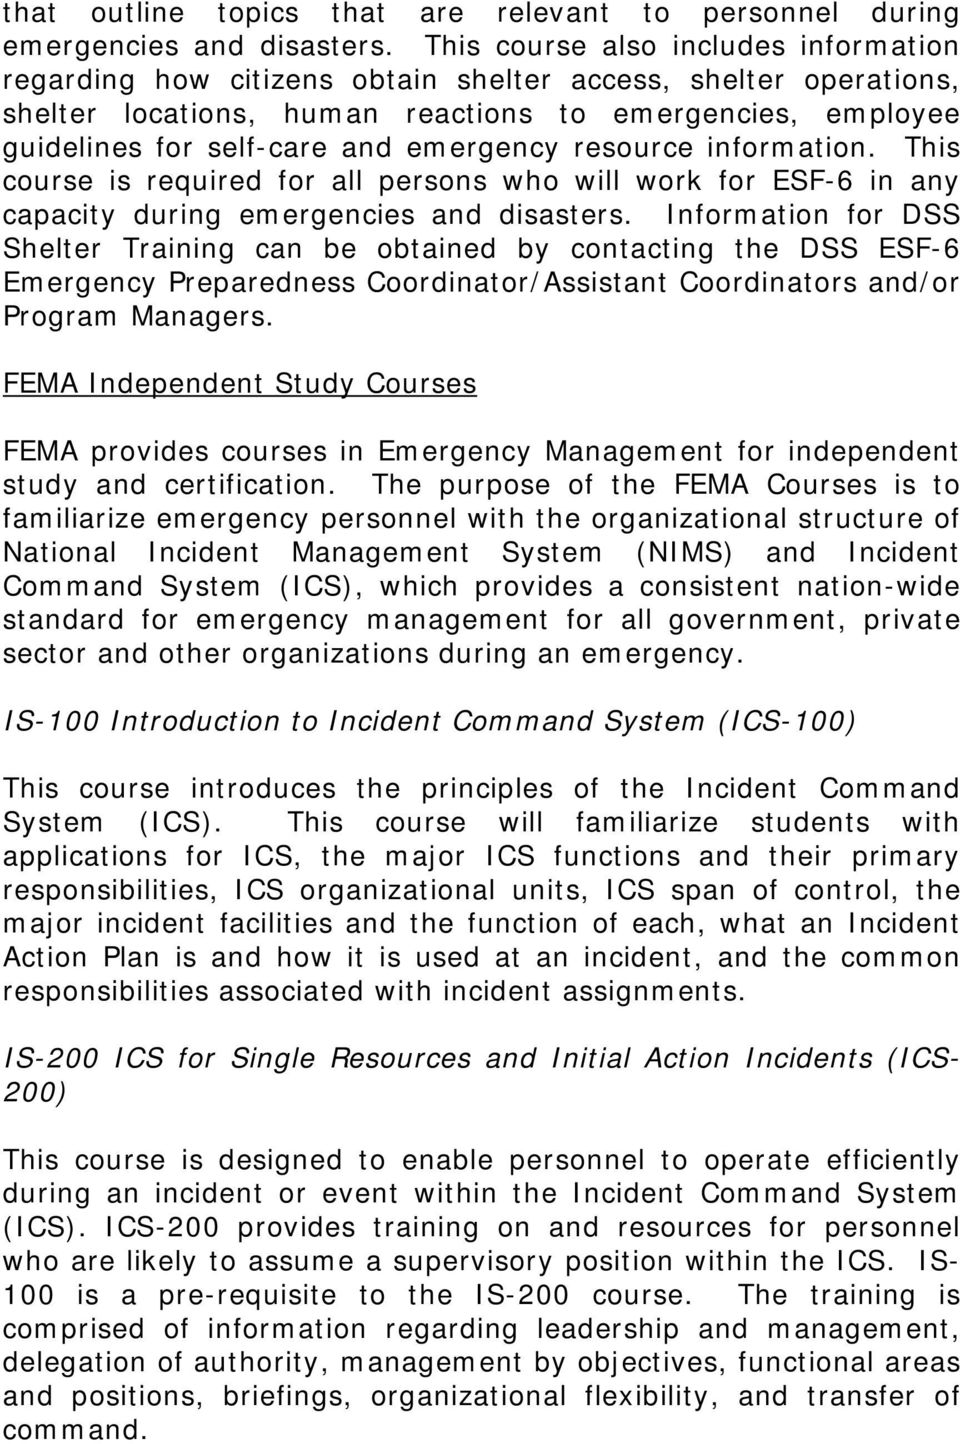 emergency resource information. This course is required for all persons who will work for ESF-6 in any capacity during emergencies and disasters.